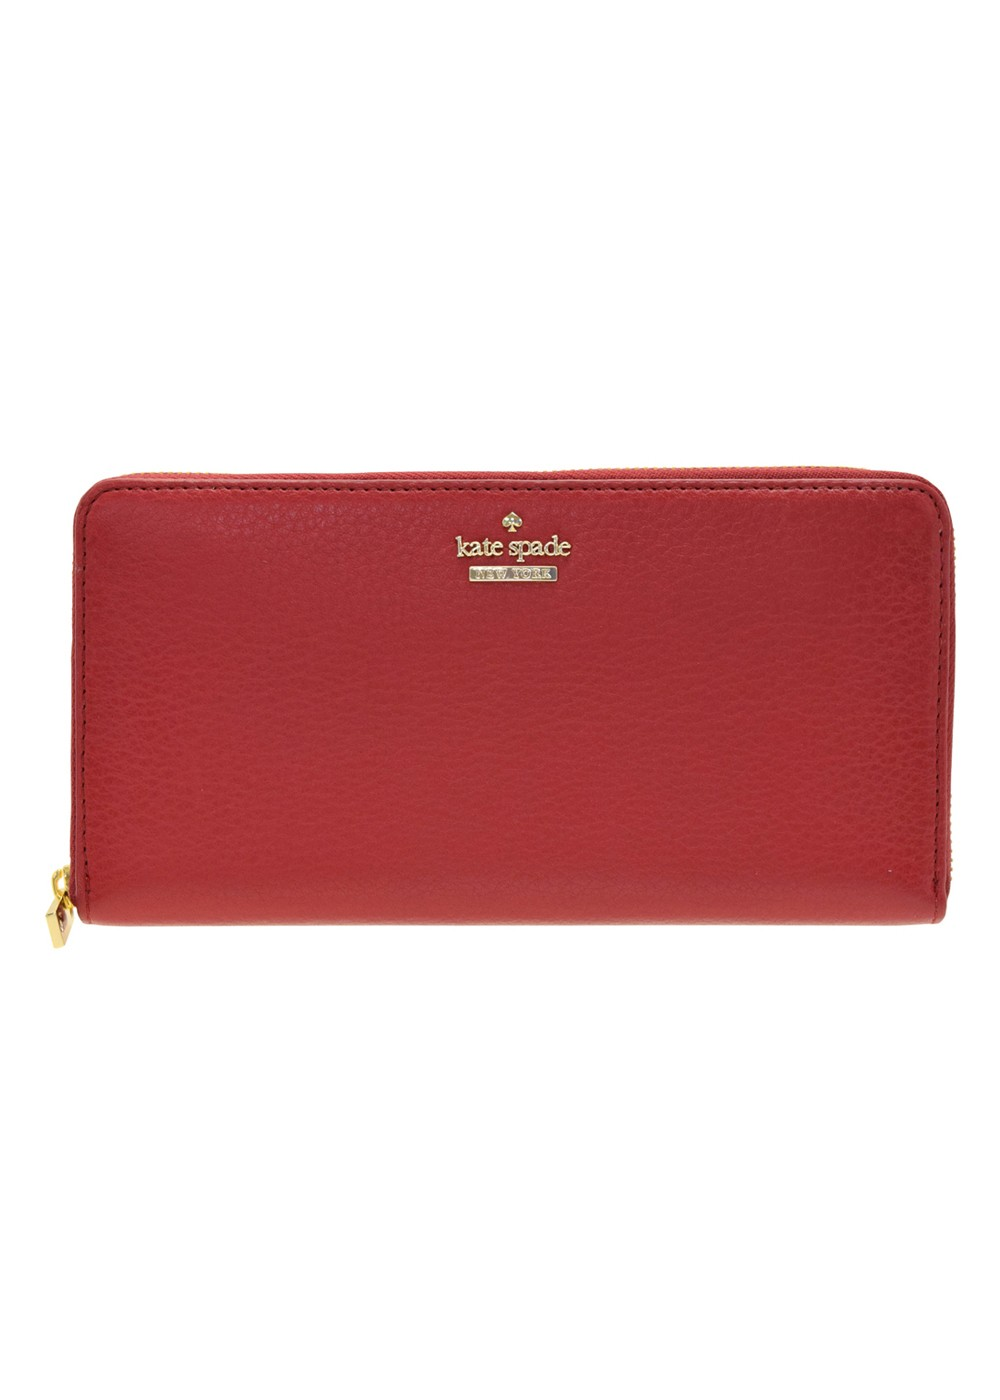 【1/13入荷】サイフ 財布 BLAKE STREET DOT LACEY|heirloomrd 金具ゴールド |レディース財布|kate spade new york - wallet and more